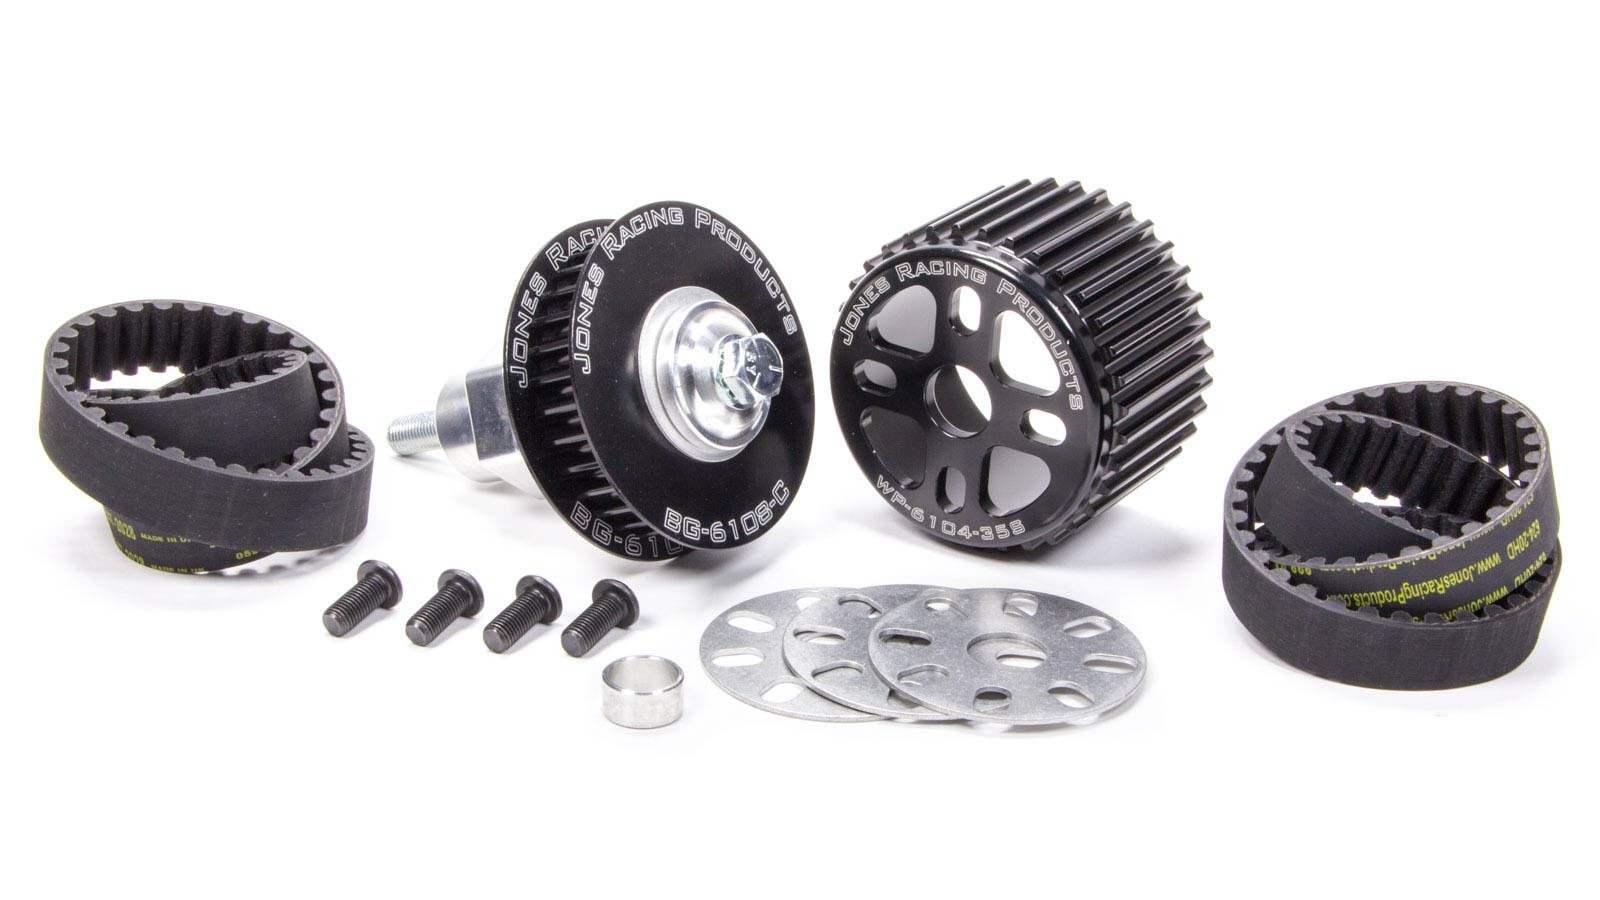 Jones Racing Products 2010-RA-11 Pulley Kit, HTD, Aluminum, Black Anodize, Small Block Chevy, Kit